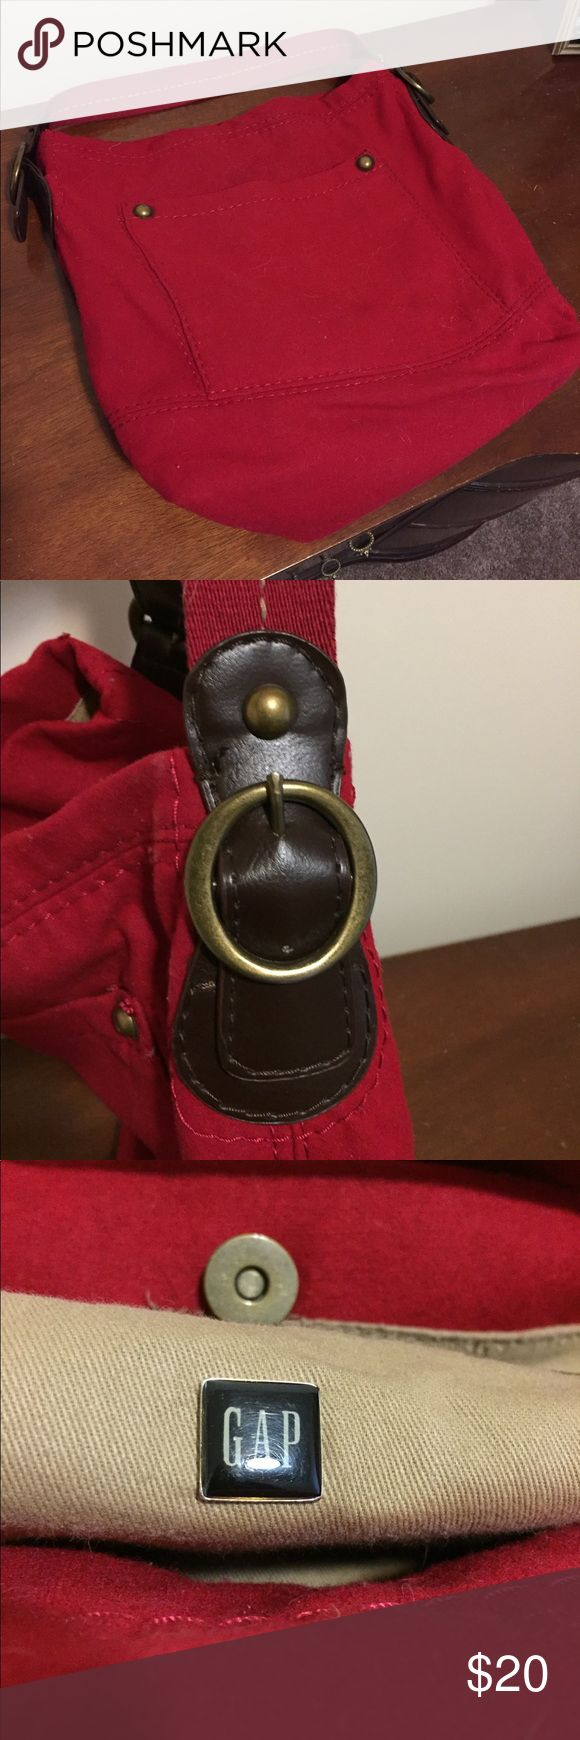 Gap Red Felt Bag Perfect for school or work! Brass buckle on brown leather is really in style right now, it's so cute! GAP Bags Shoulder Bags